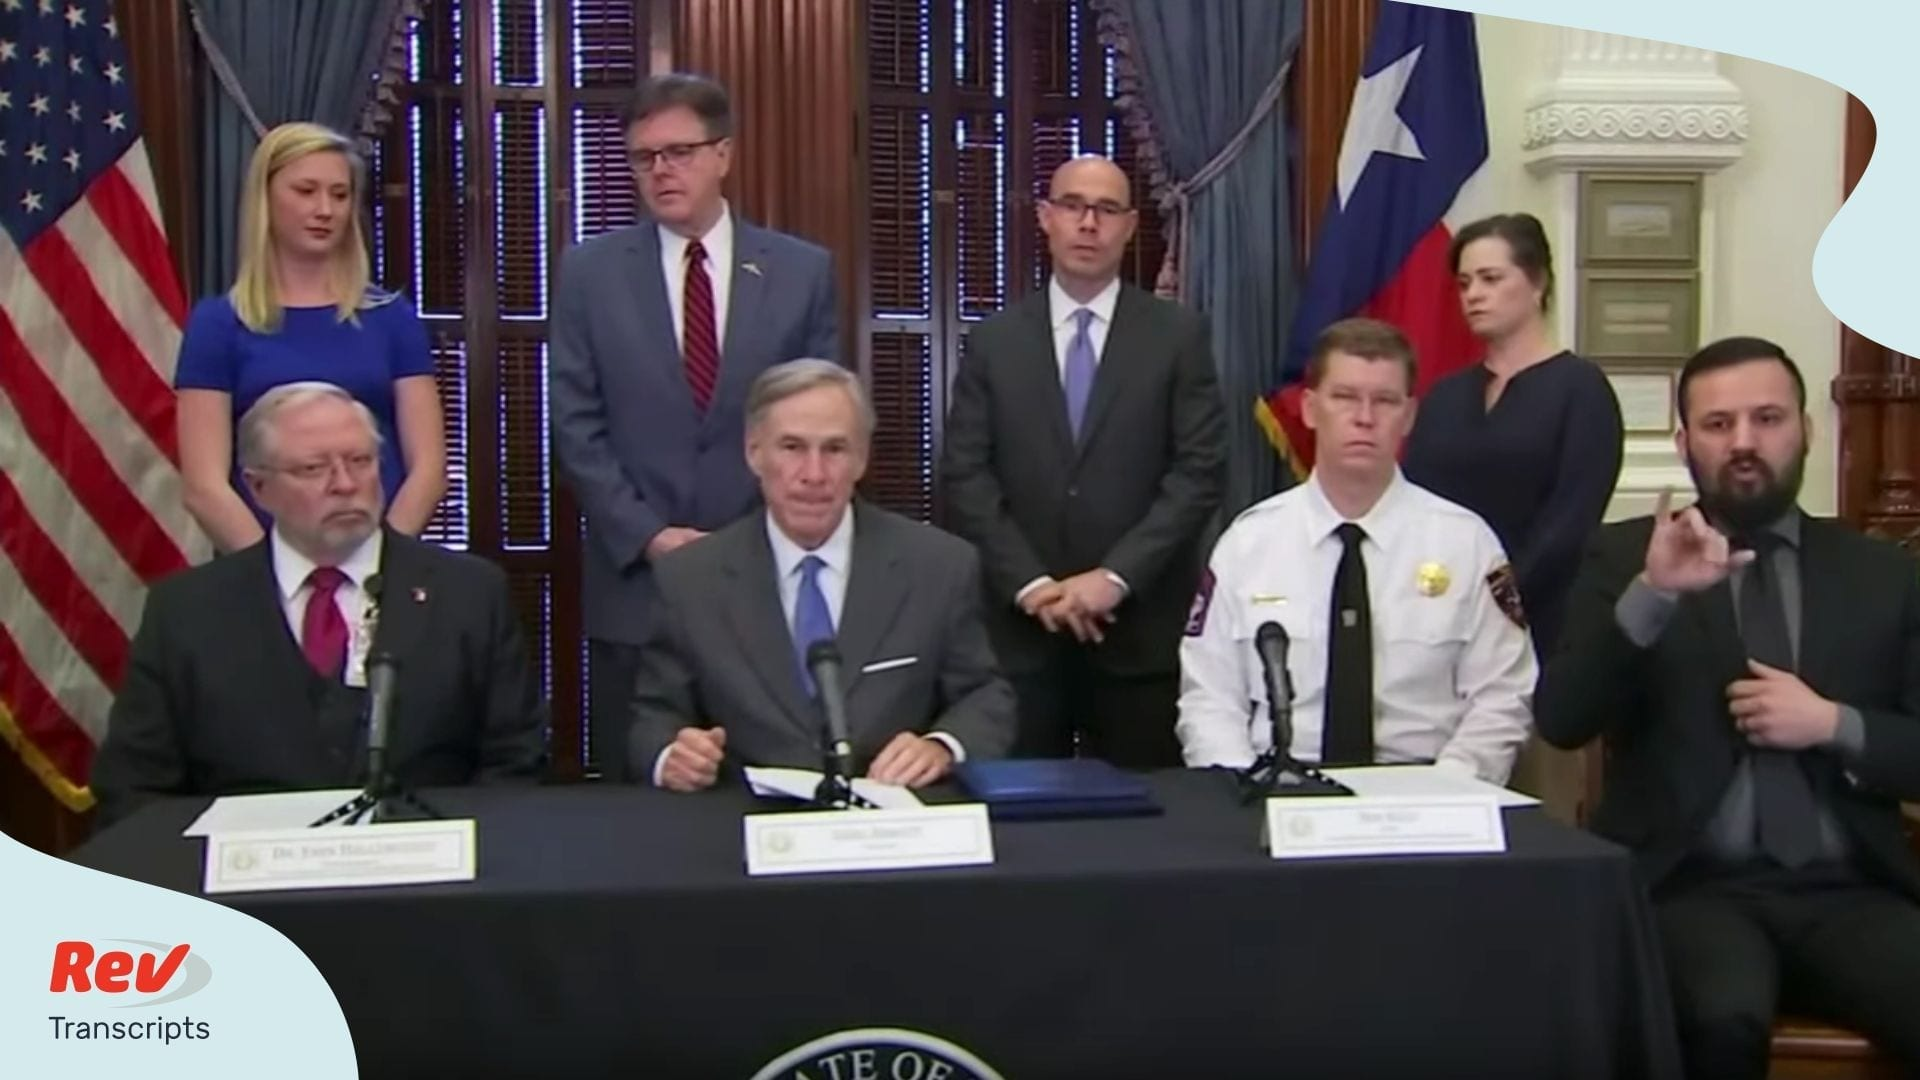 Greg Abbott Texas Coronavirus Update Transcript